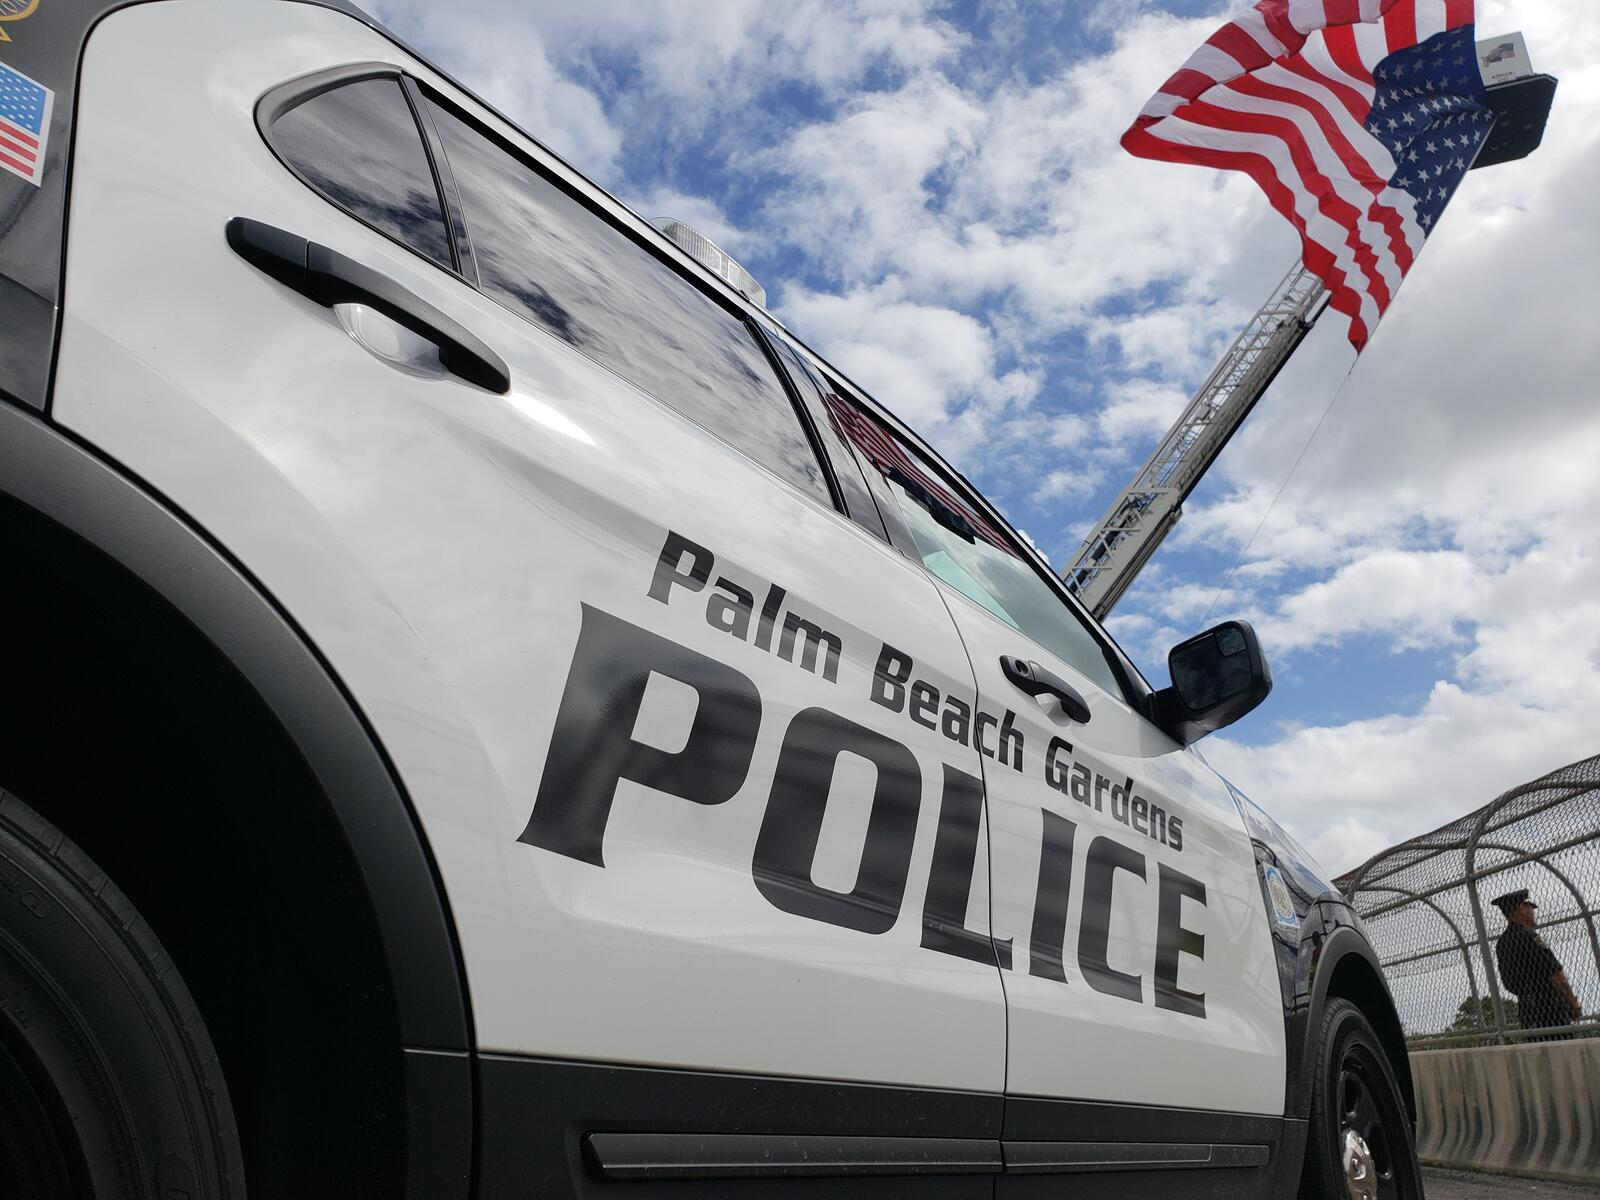 a106f3bde599c706775d66a82f2645f1 - Palm Beach Gardens Police Department Records